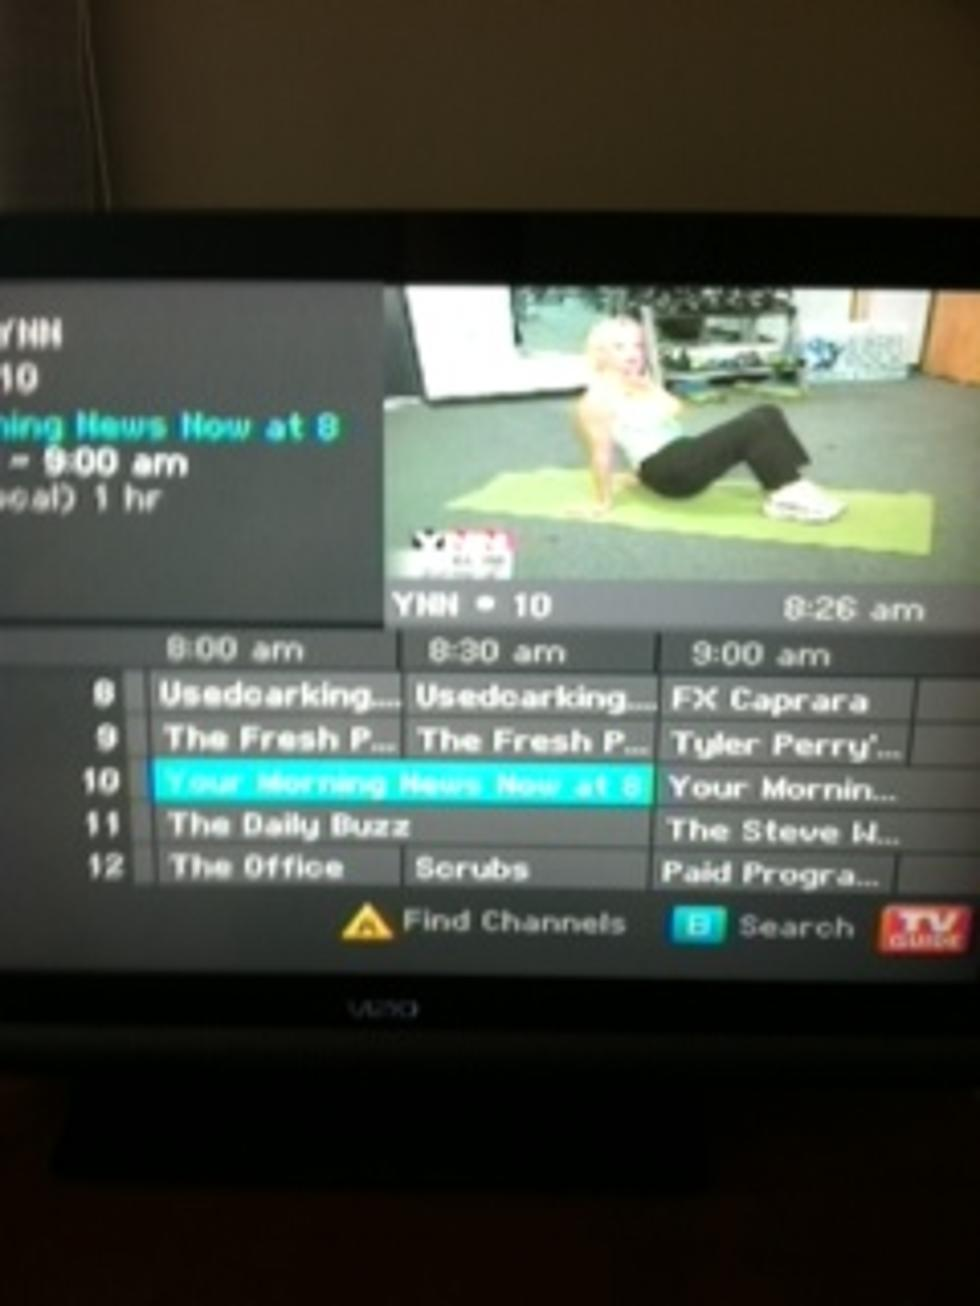 Time Warner Cable Unveils New On-Screen Channel Guide